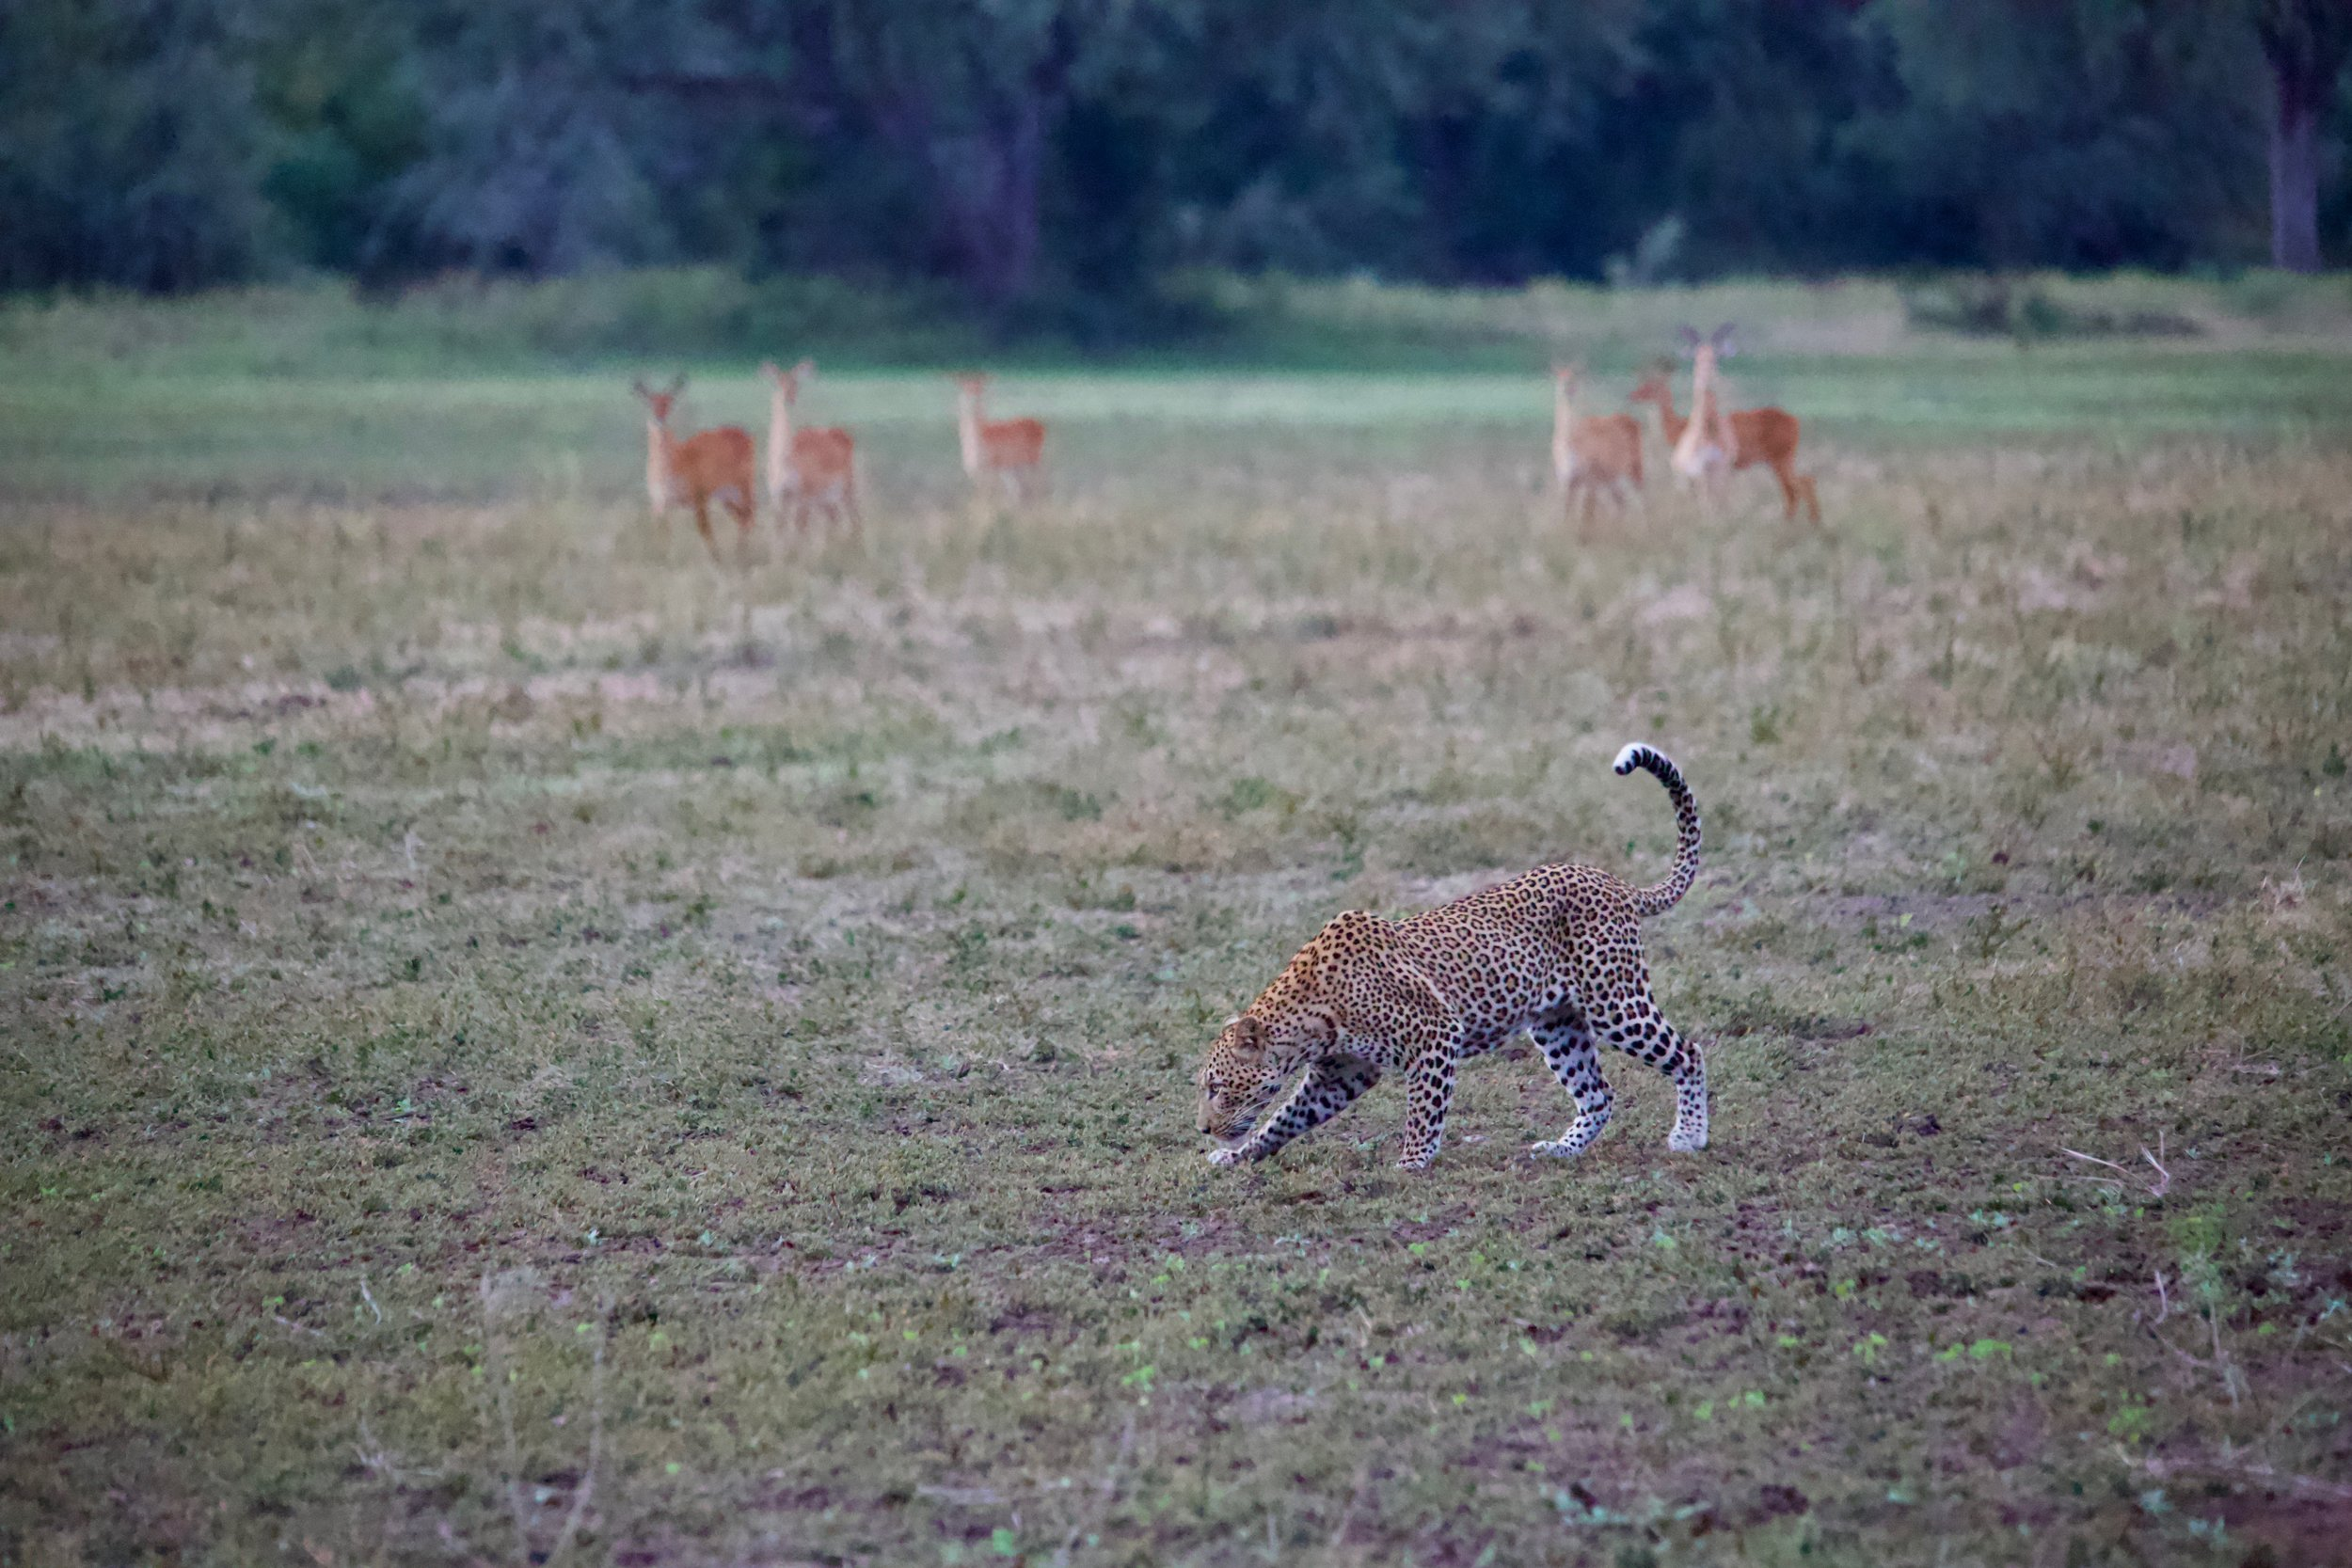 Male leopard with Puku and Impala in the background.